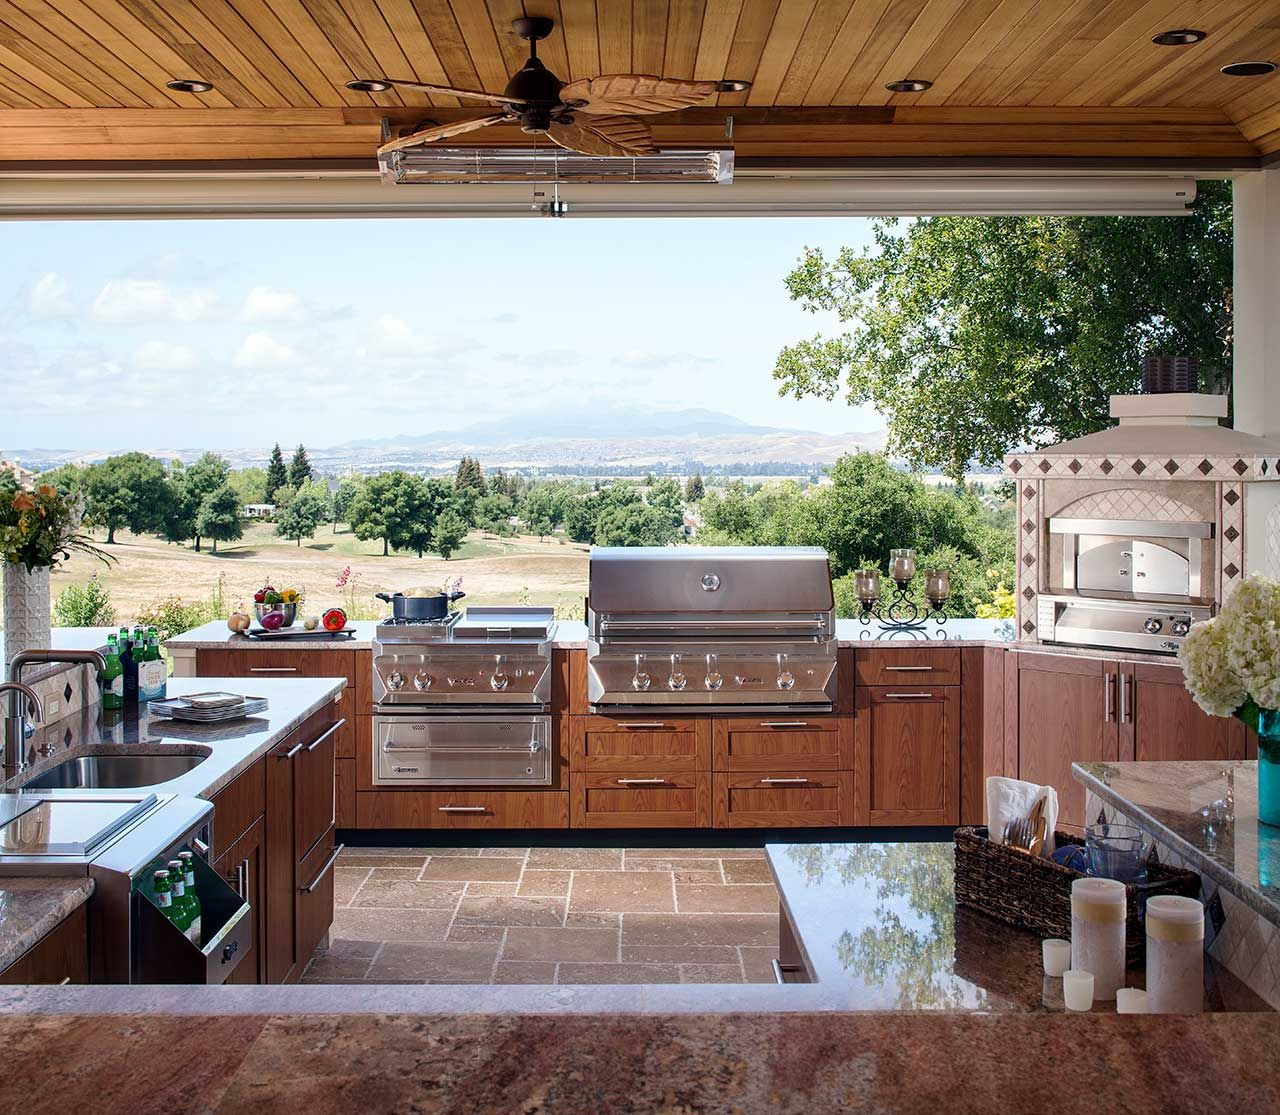 Outdoor Kitchens Perfect For Summer Entertaining Design Chic In 2020 Outdoor Kitchen Decor Luxury Outdoor Kitchen Outdoor Kitchen Cabinets